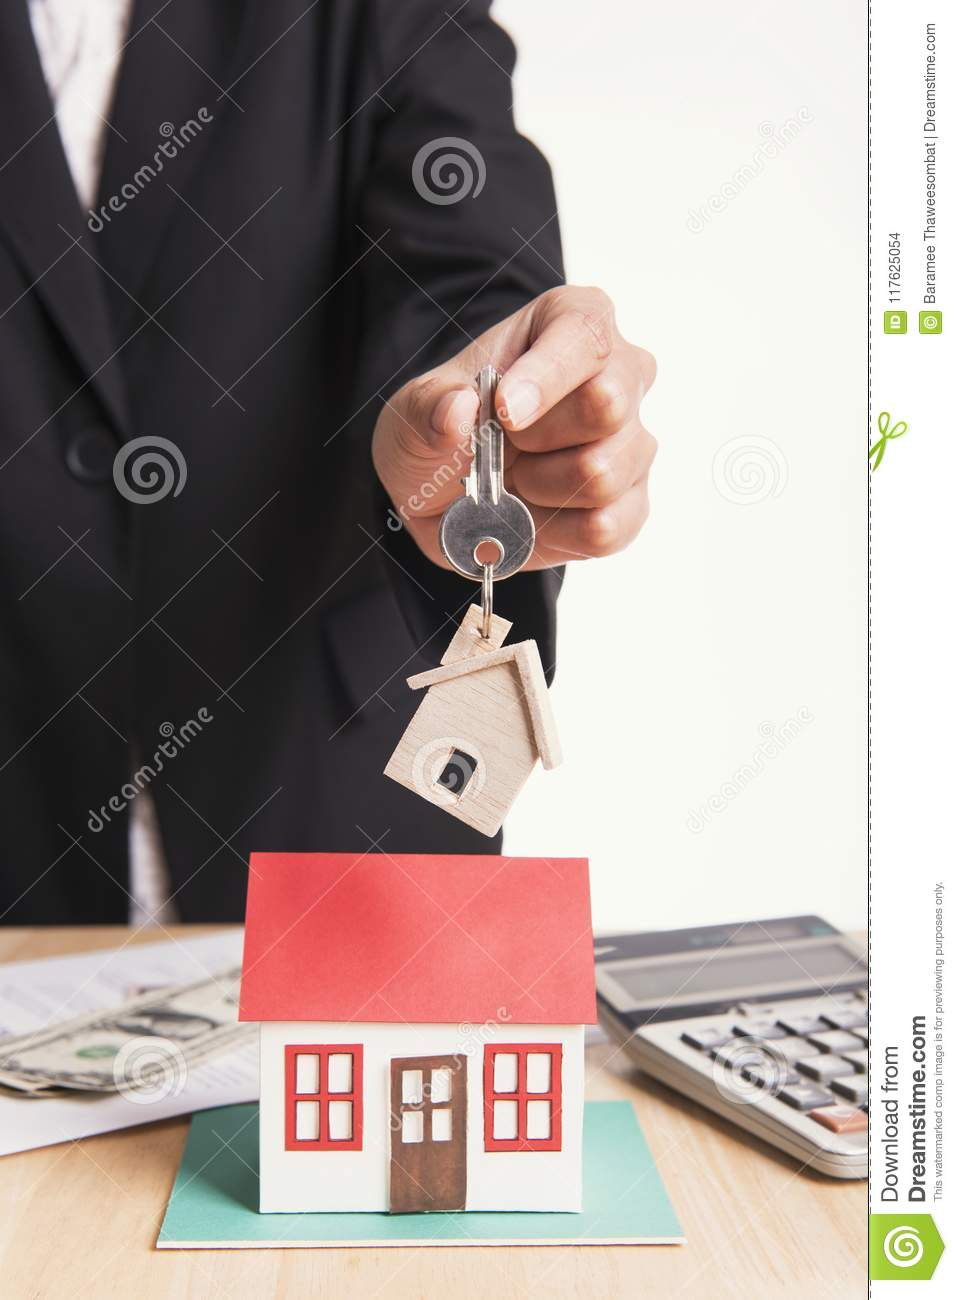 Salesman Agent Exchange Key House With Customer After Agreement